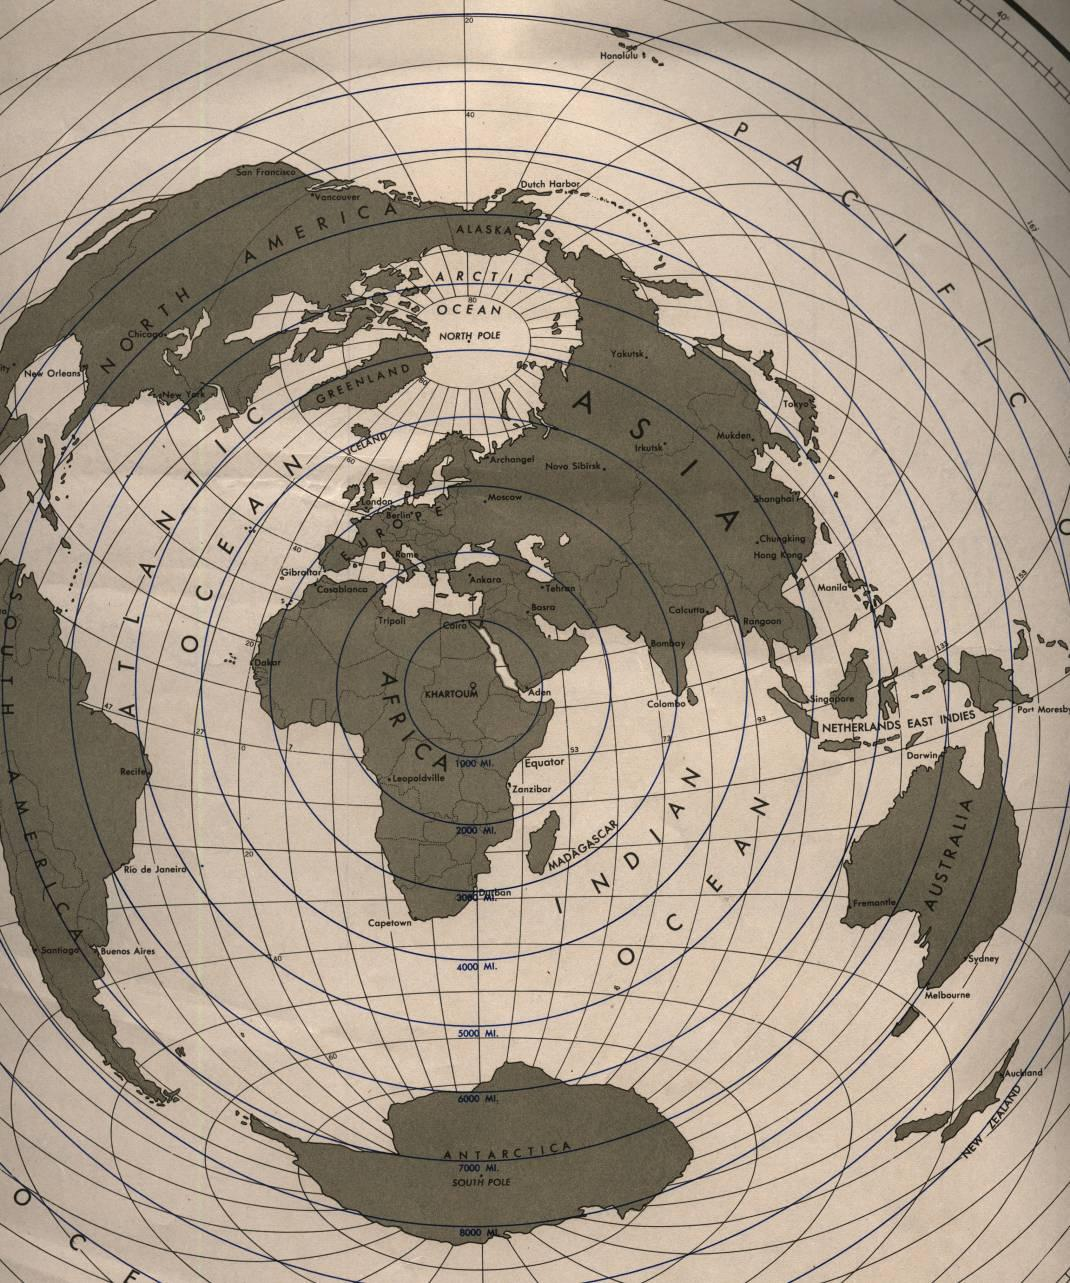 and here are some tres cool maps that use unusual projections which i found when poking around on the internet